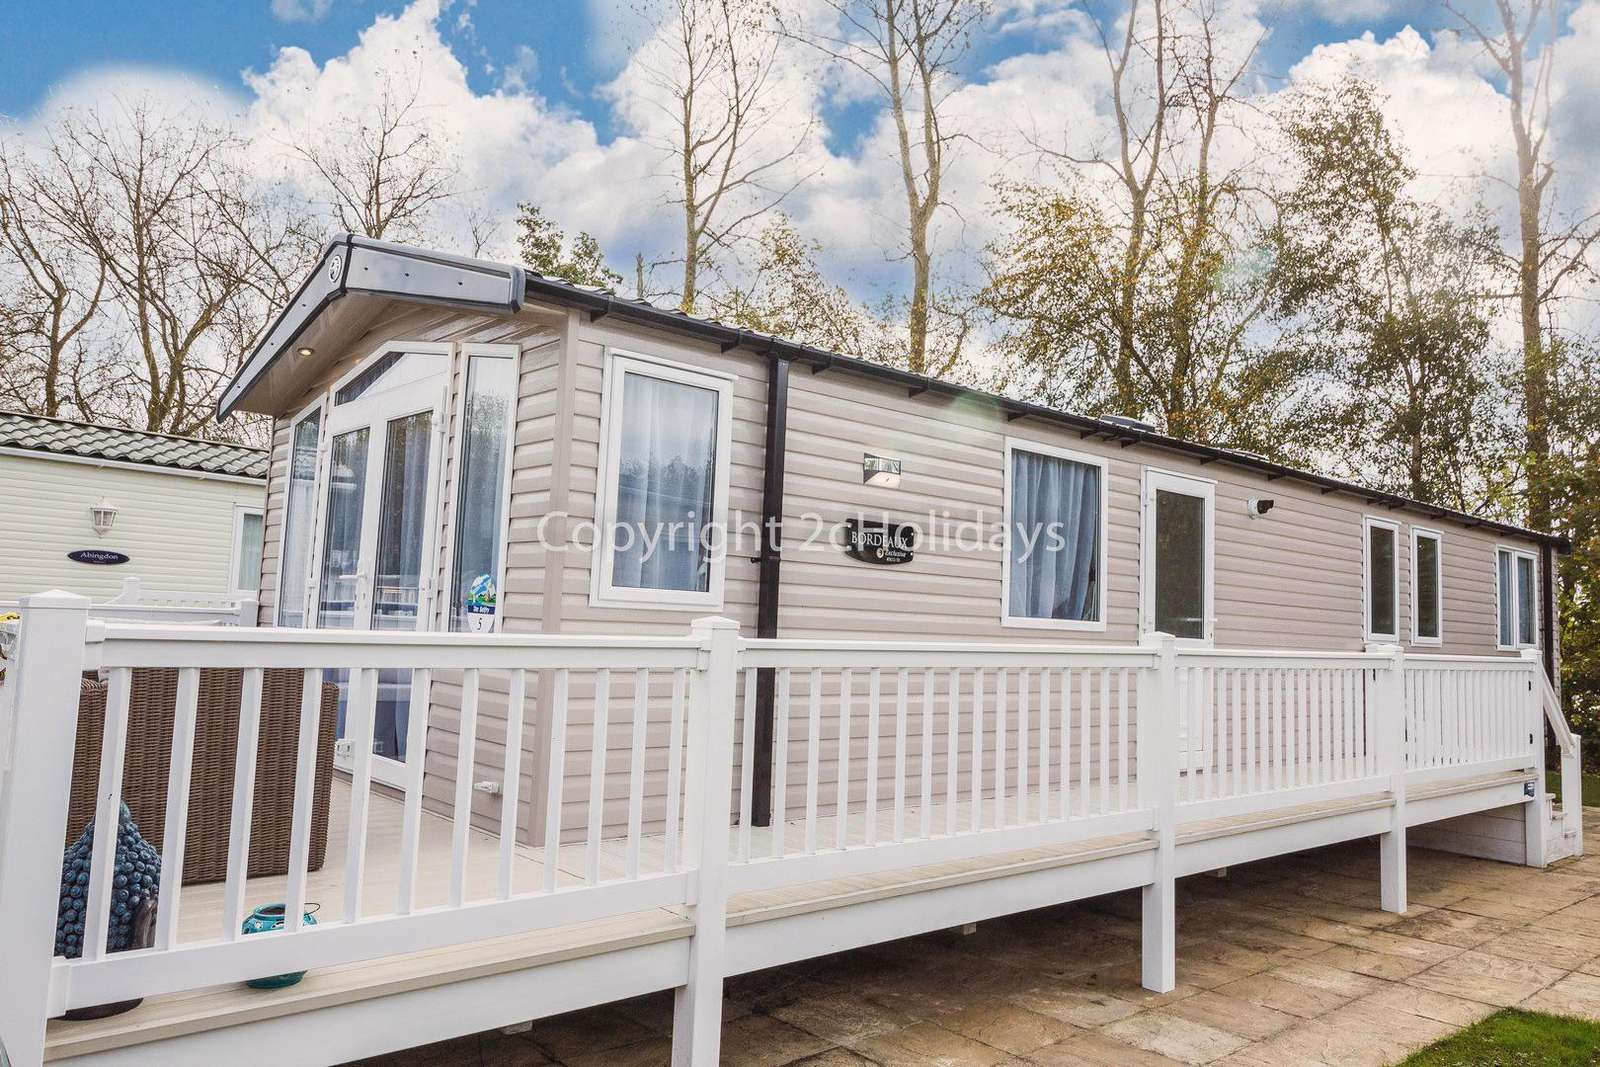 8 berth accommodation with decking at Hopton Holiday Village